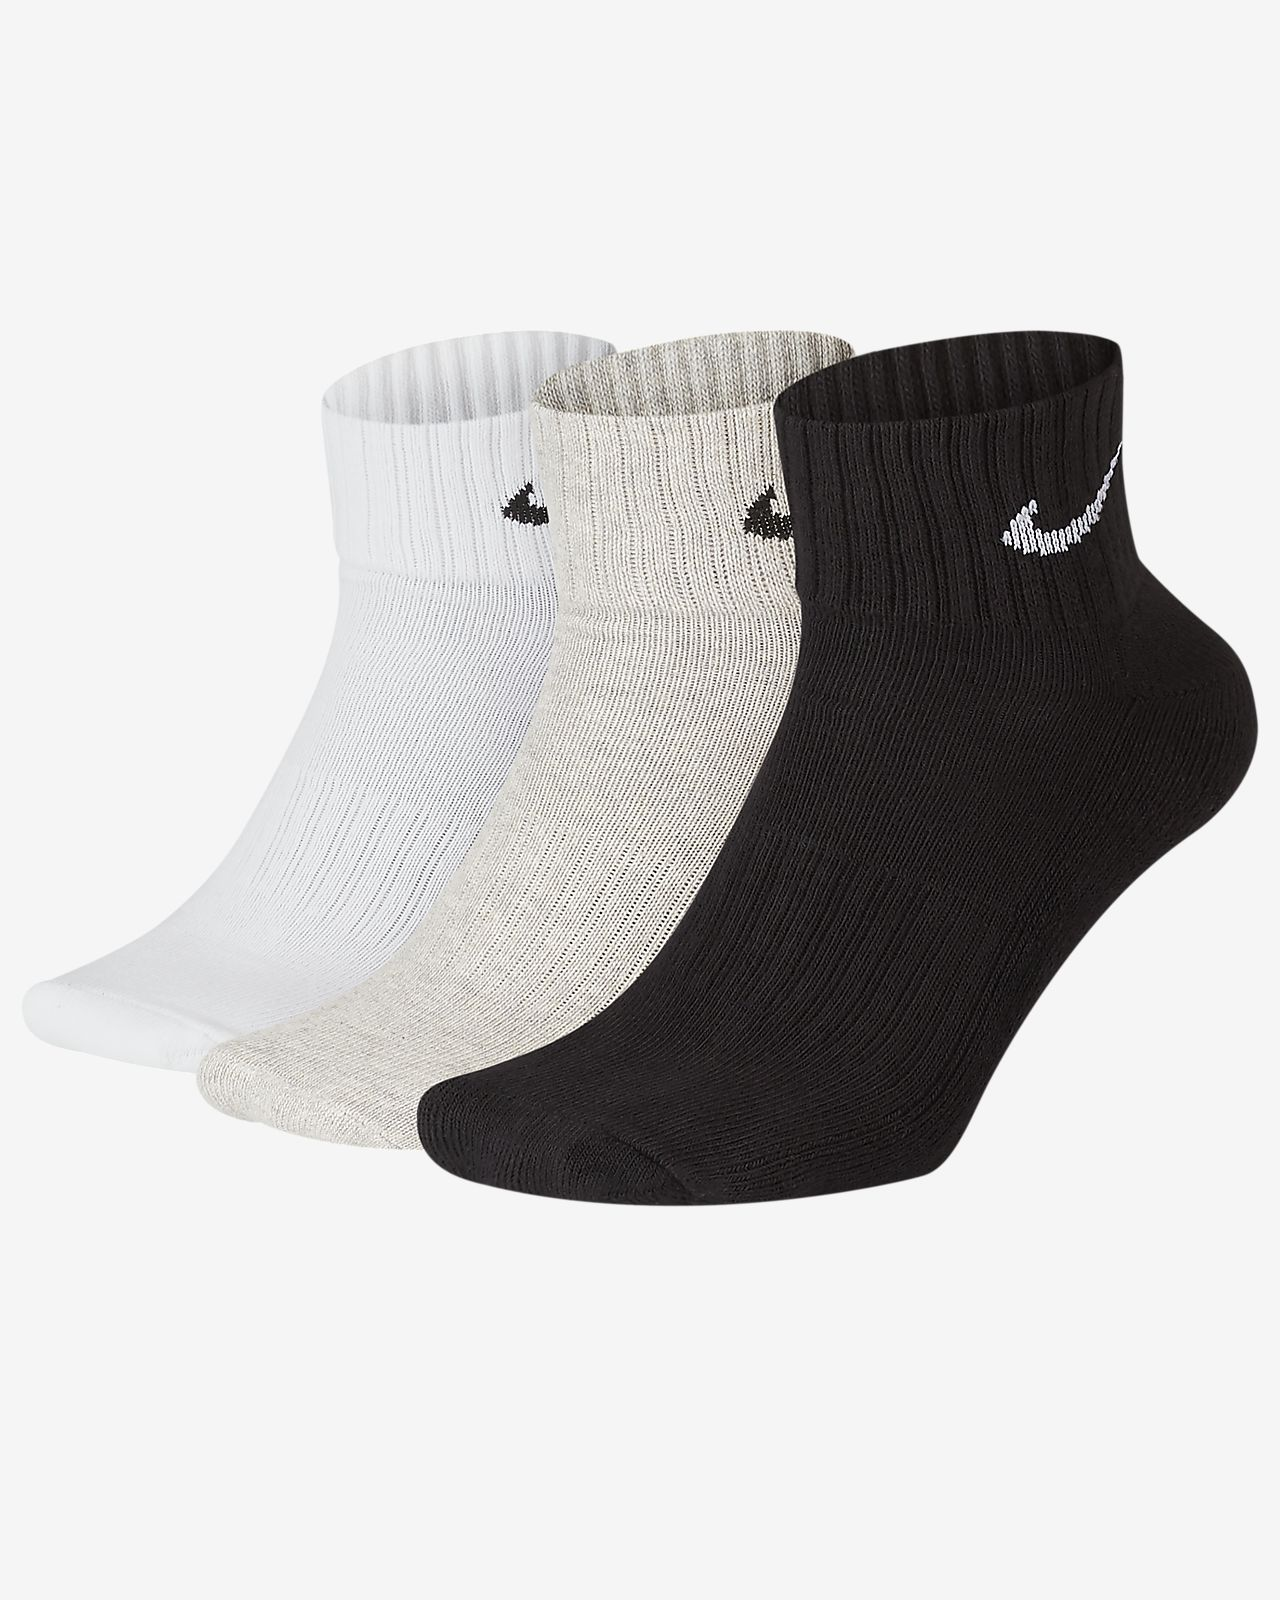 3 Pair Calzini Uomo Nike Everyday Cushion Ankle Training Socks